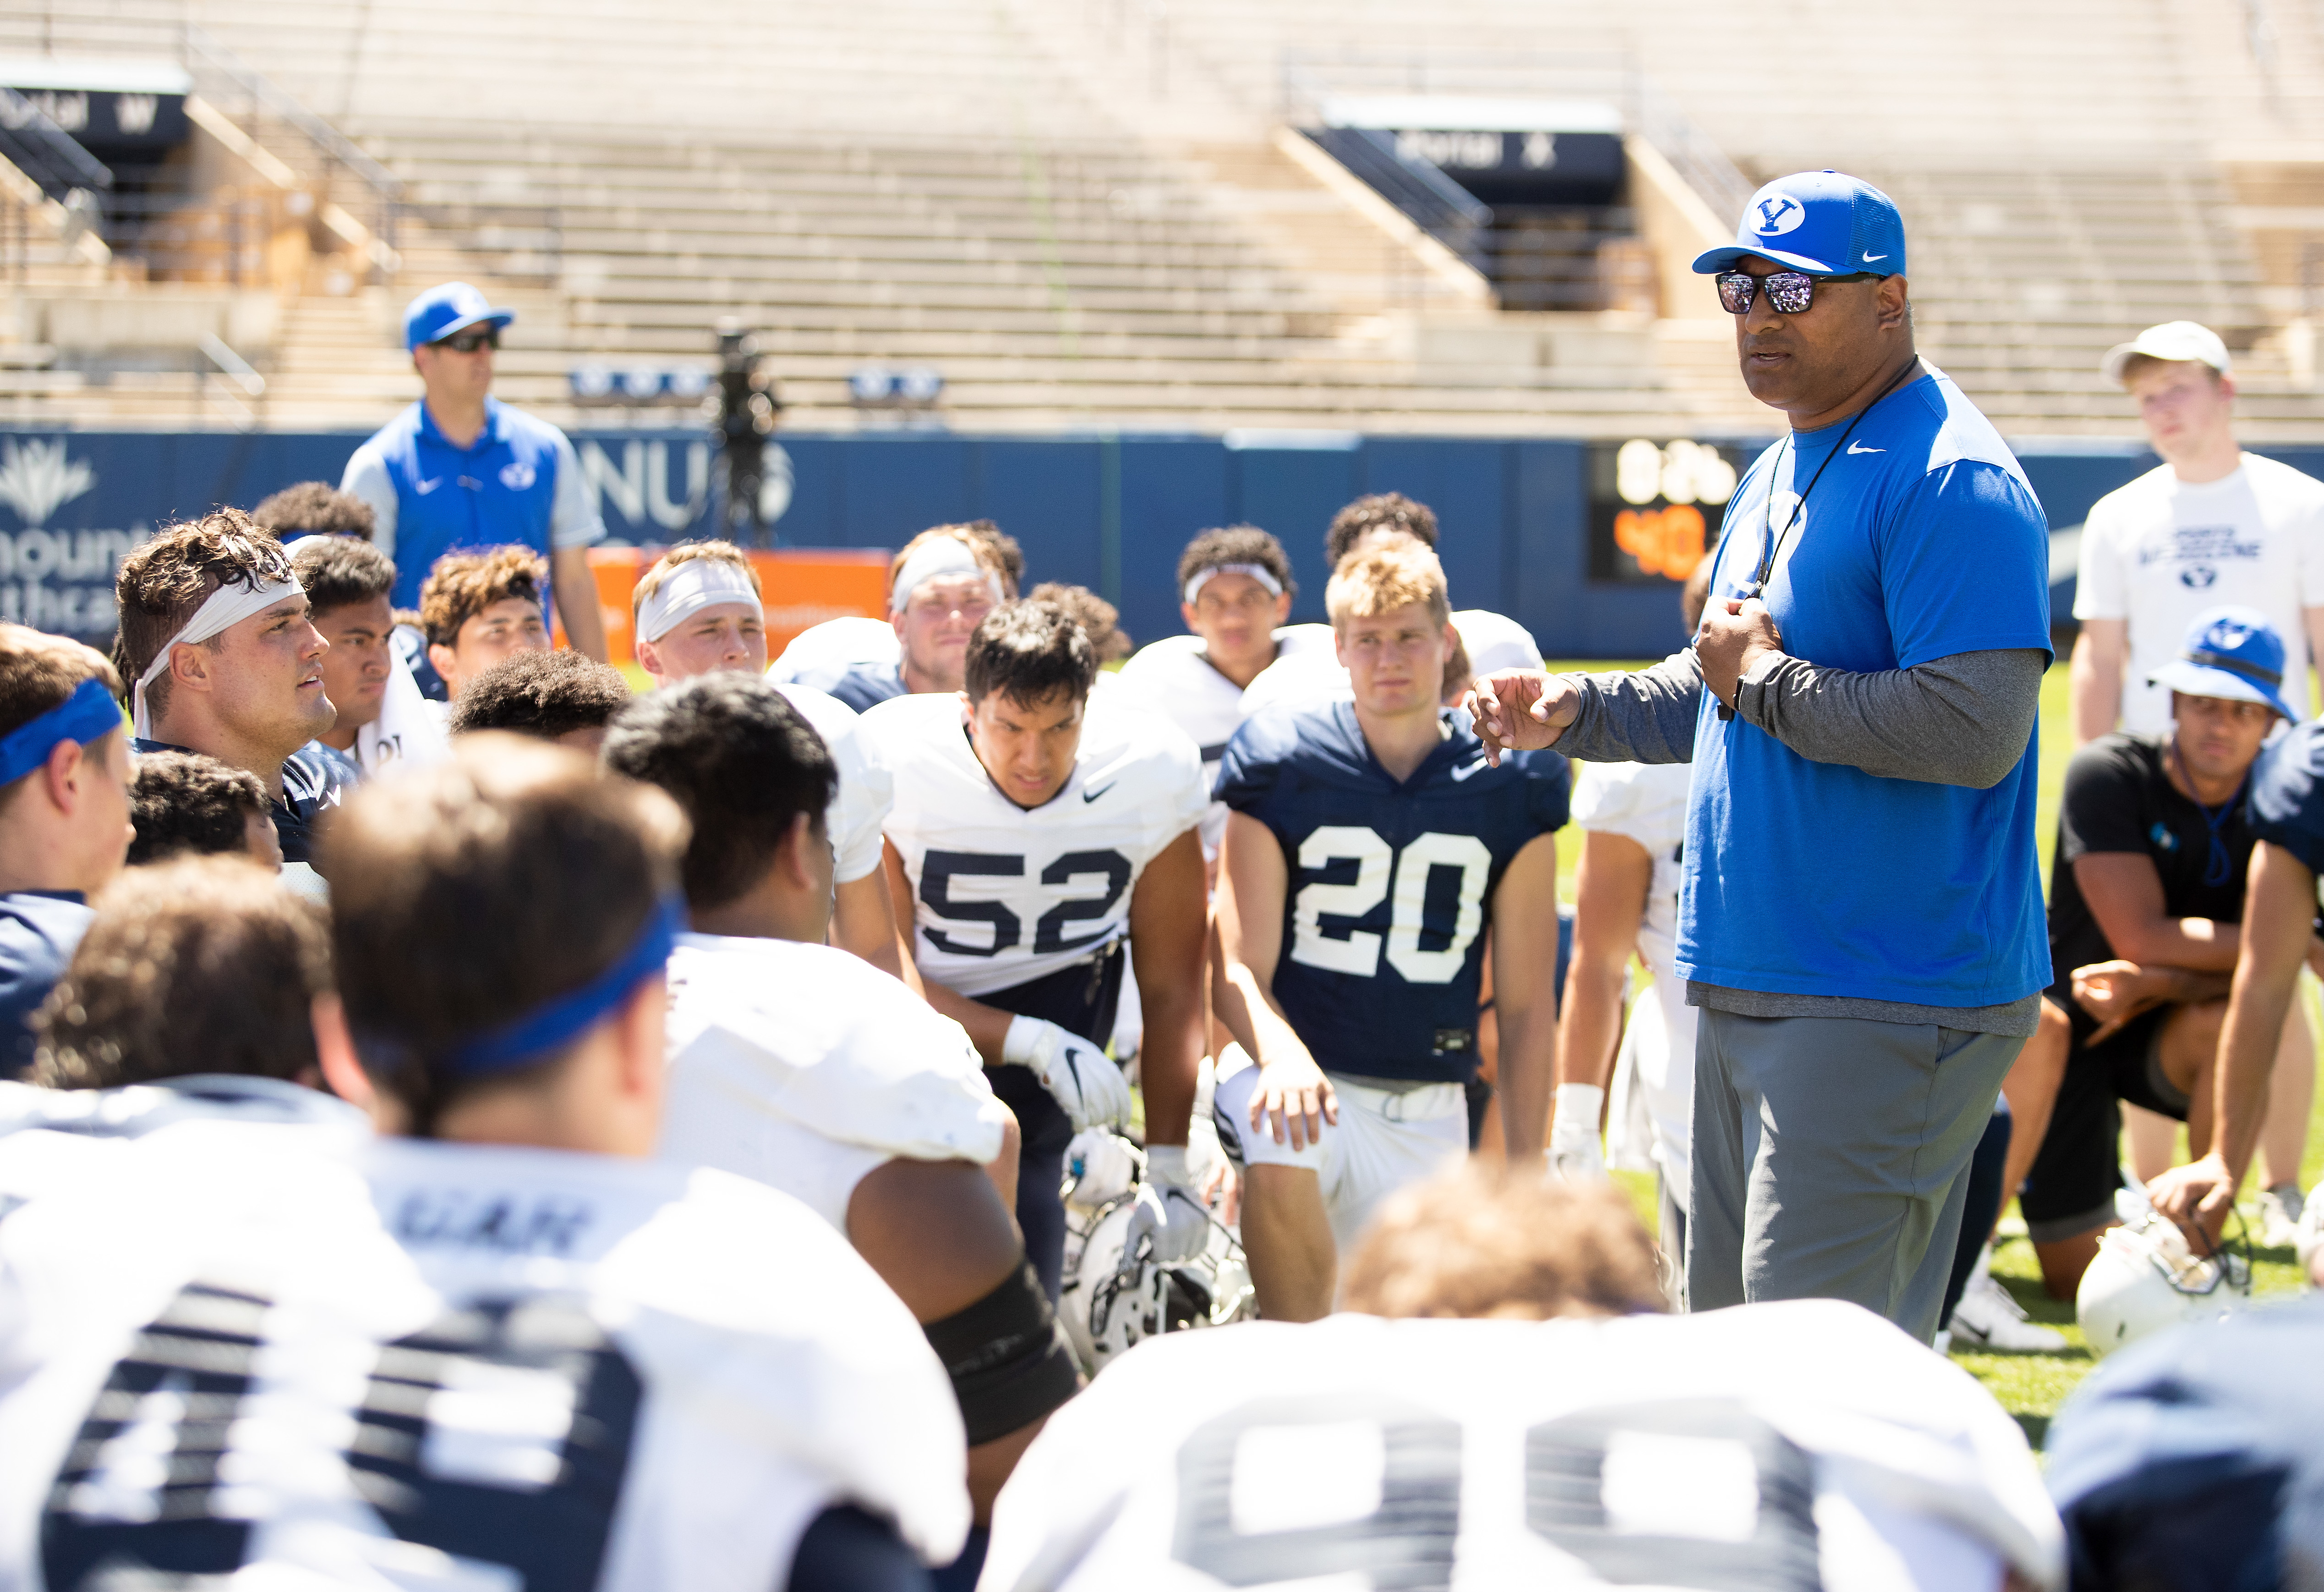 BYU coach Kalani Sitake talks to the team during the Cougars' practice Wednesday, Aug. 21, 2019 at LaVell Edwards Stadium in Provo.